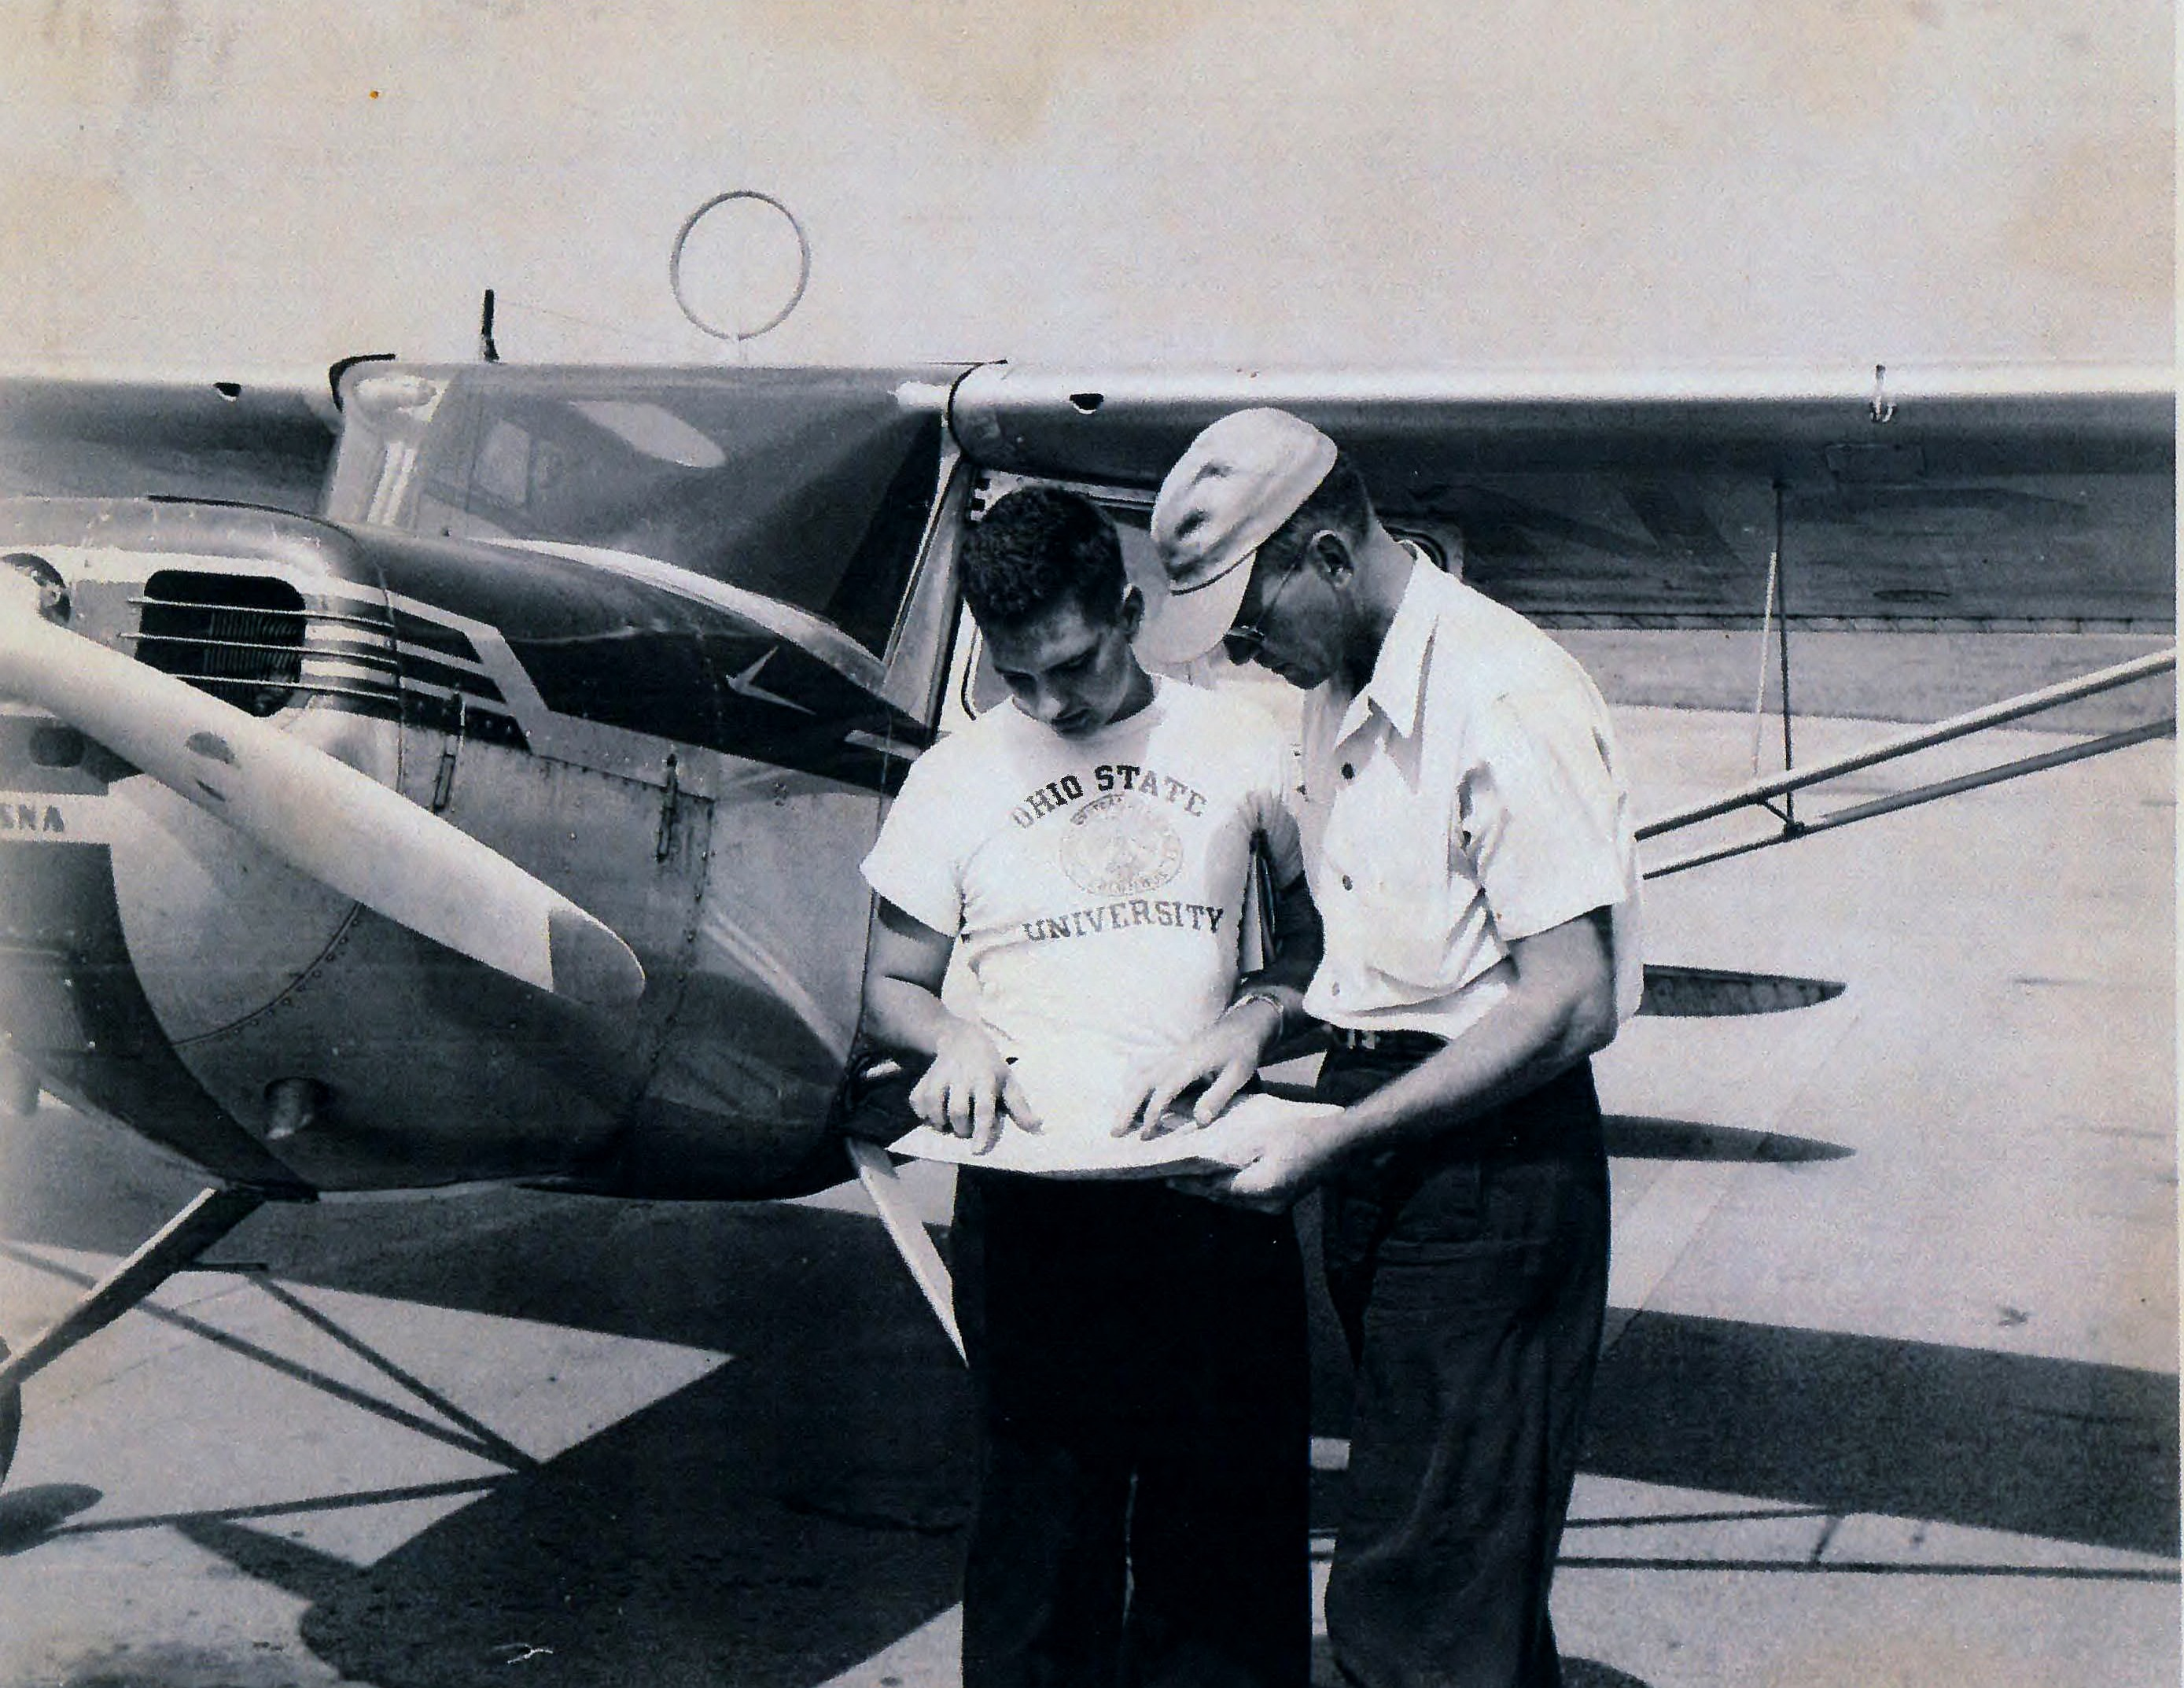 History of The Ohio State Airport | The Ohio State University Airport